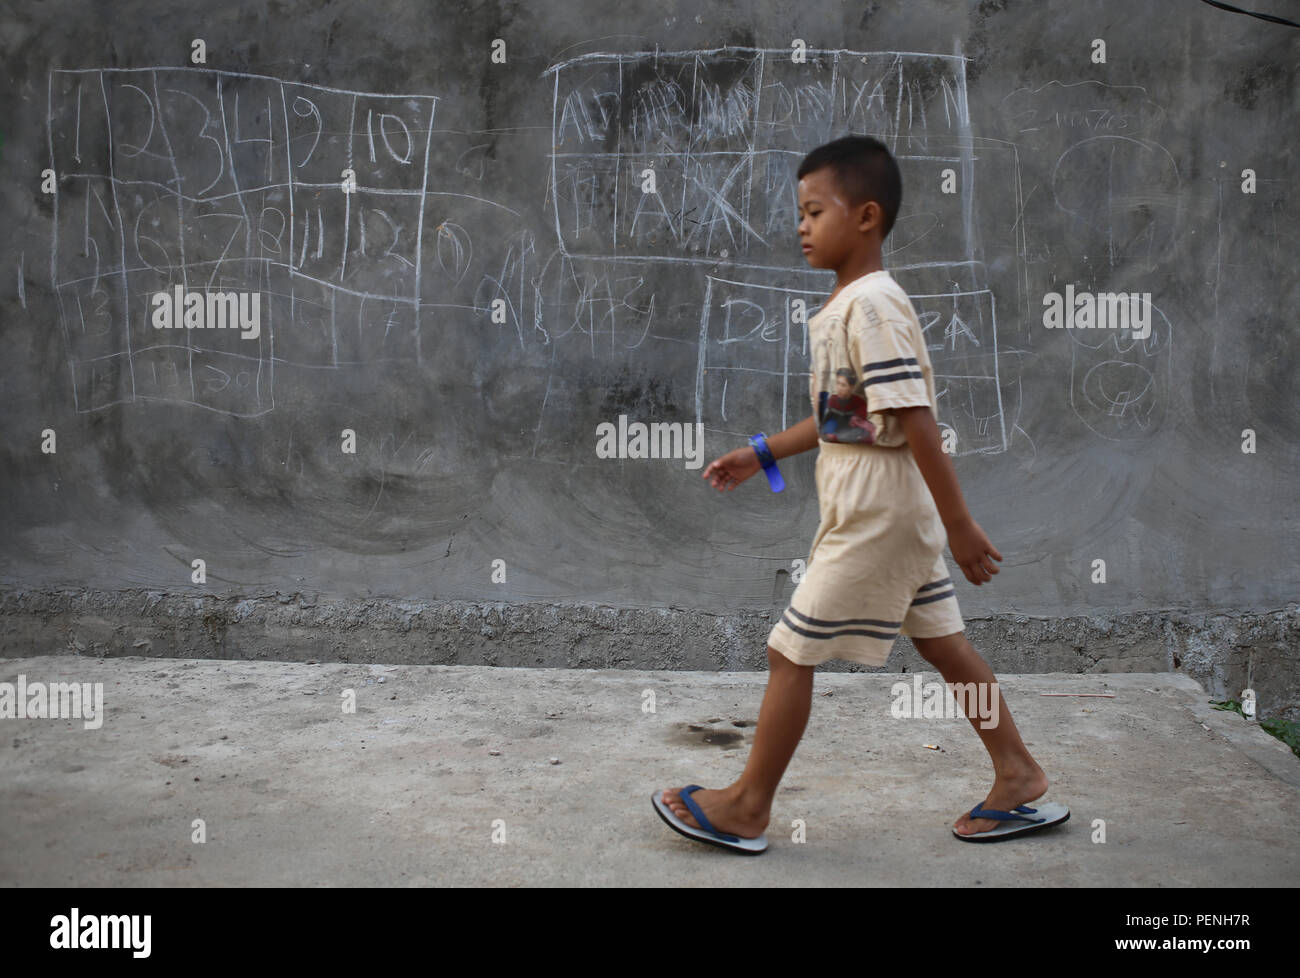 Kid passing through an alley - Stock Image